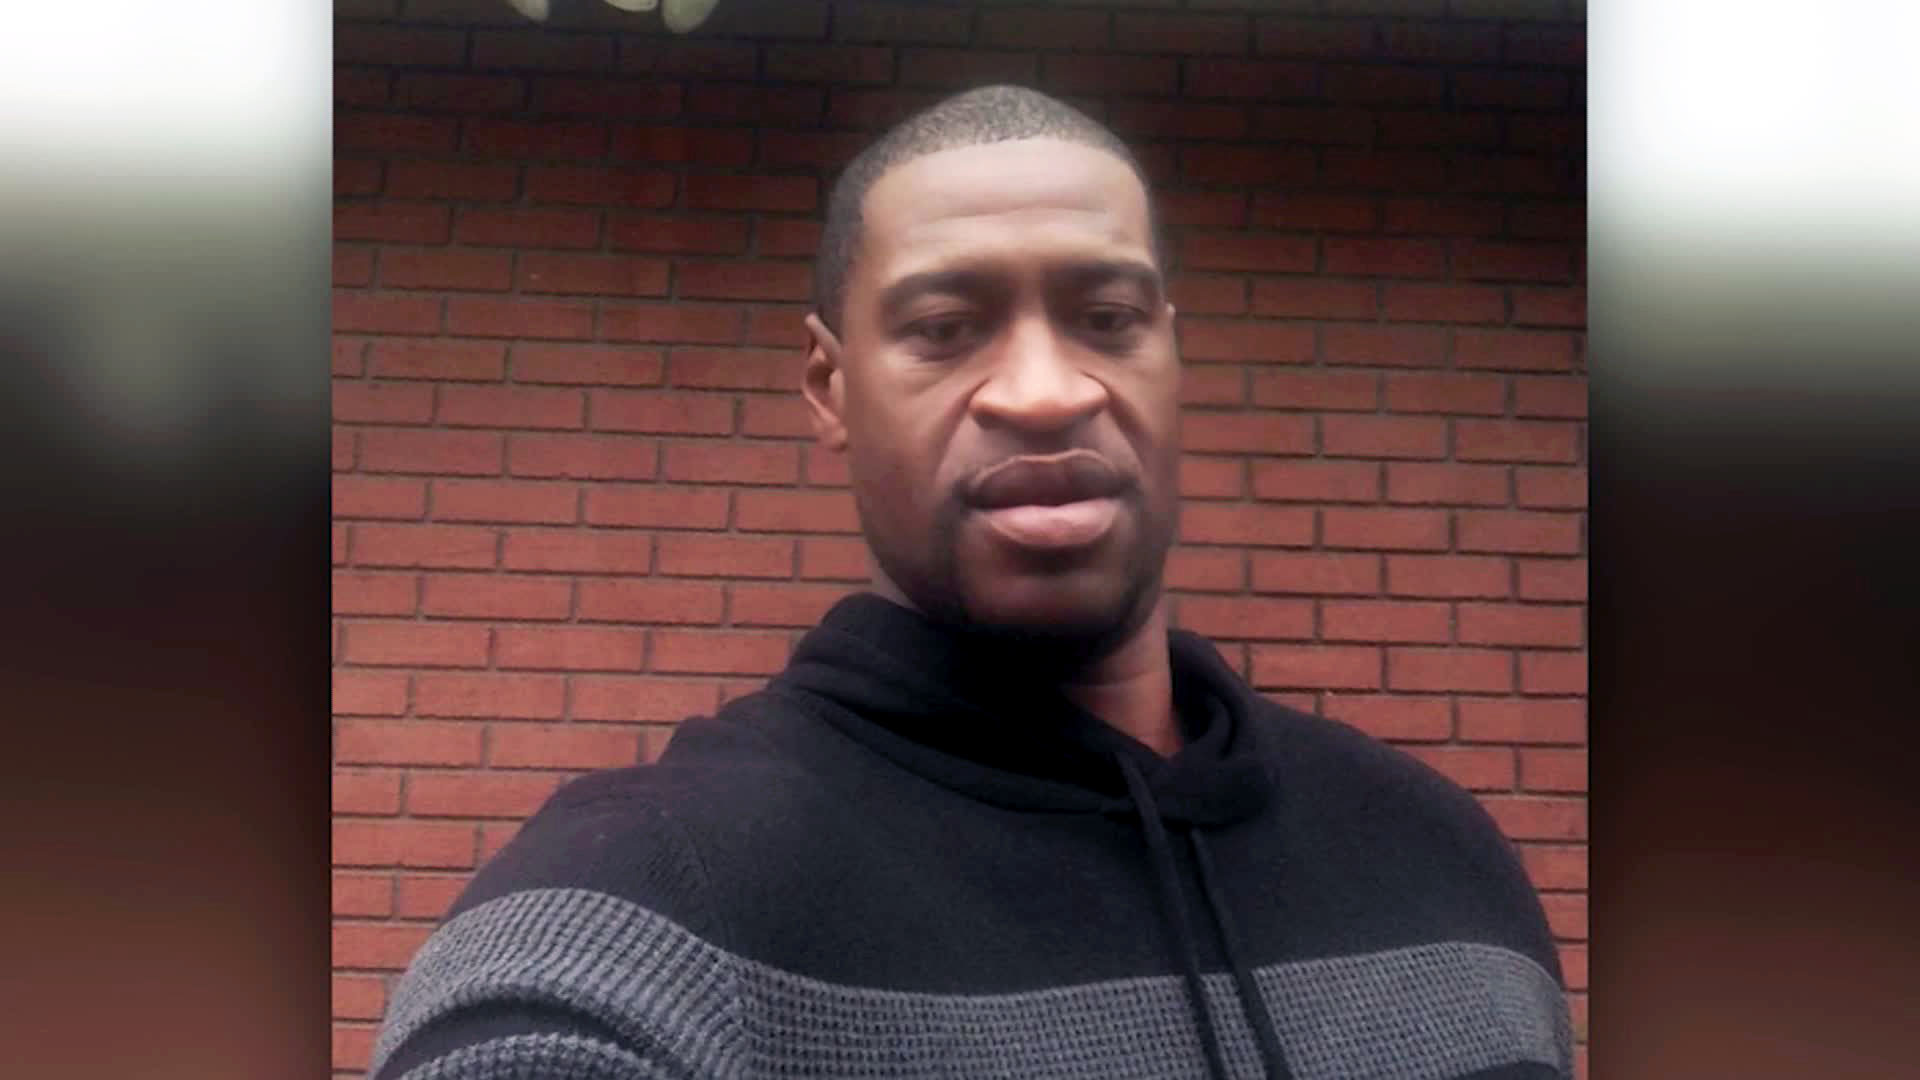 George Floyd died while in police custody on May 25 in Minneapolis, Minnesota. Photo Credit: Courtesy Ben Crump Law Firm